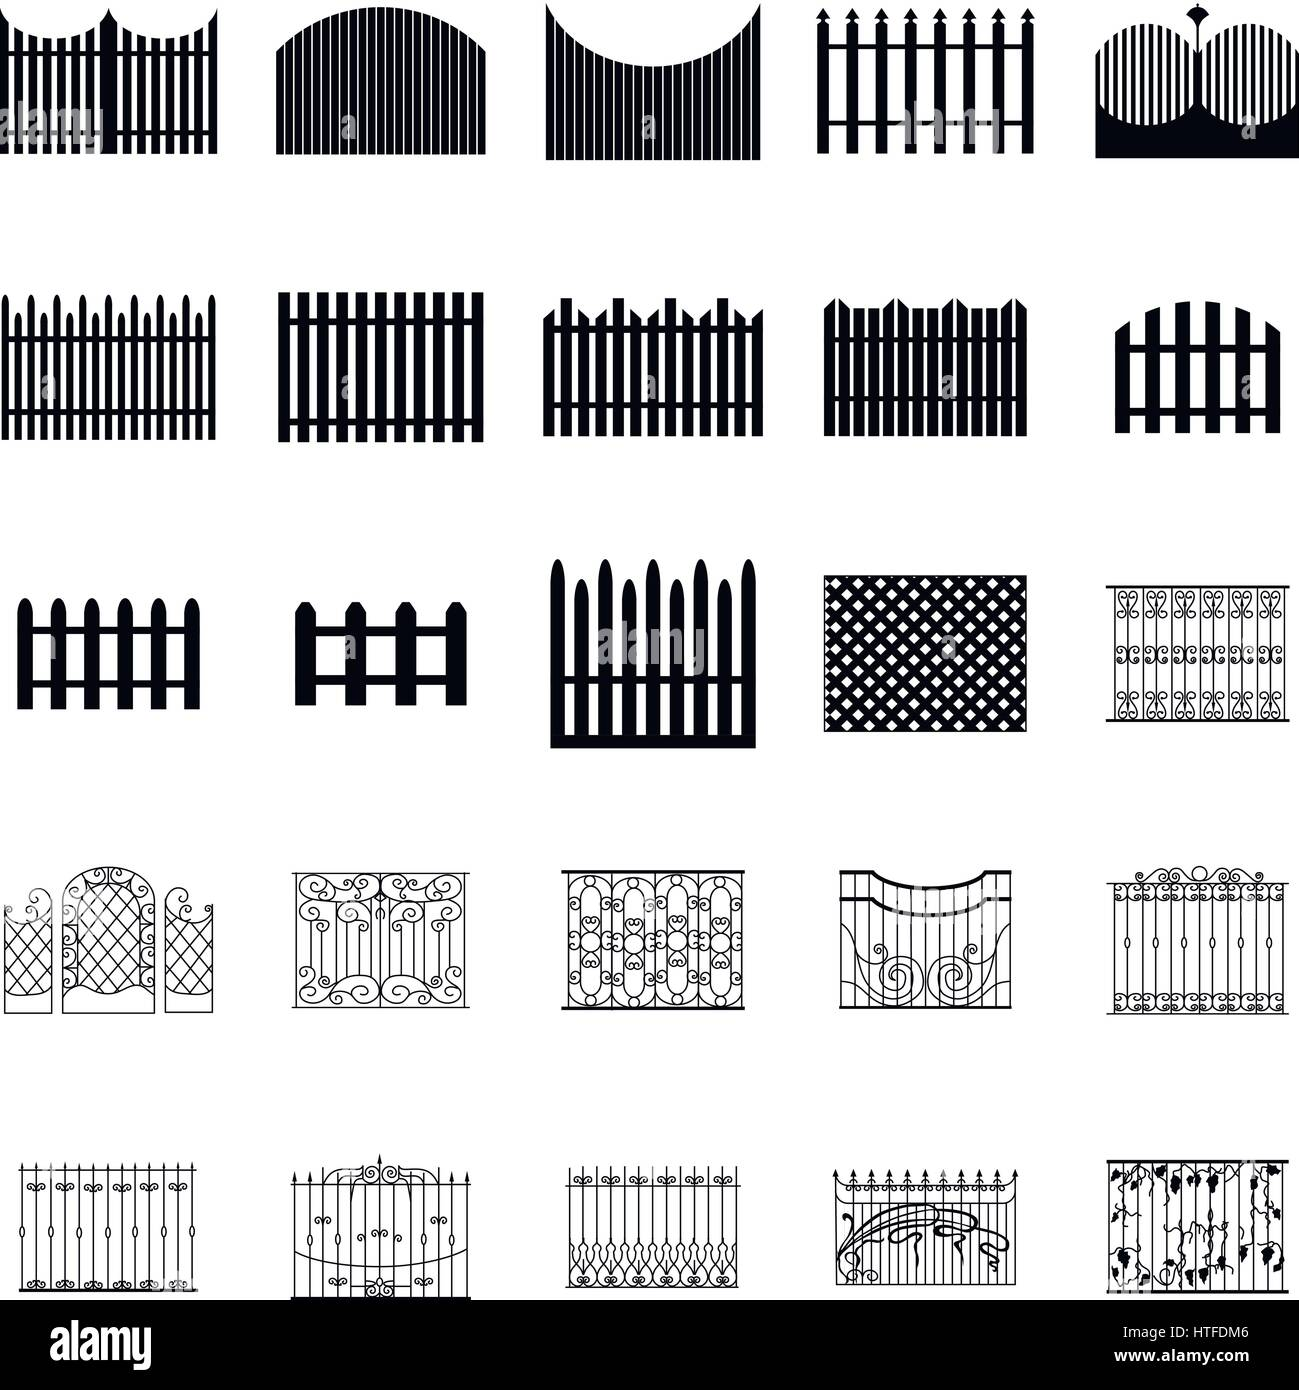 Fence silhouettes set - Stock Vector